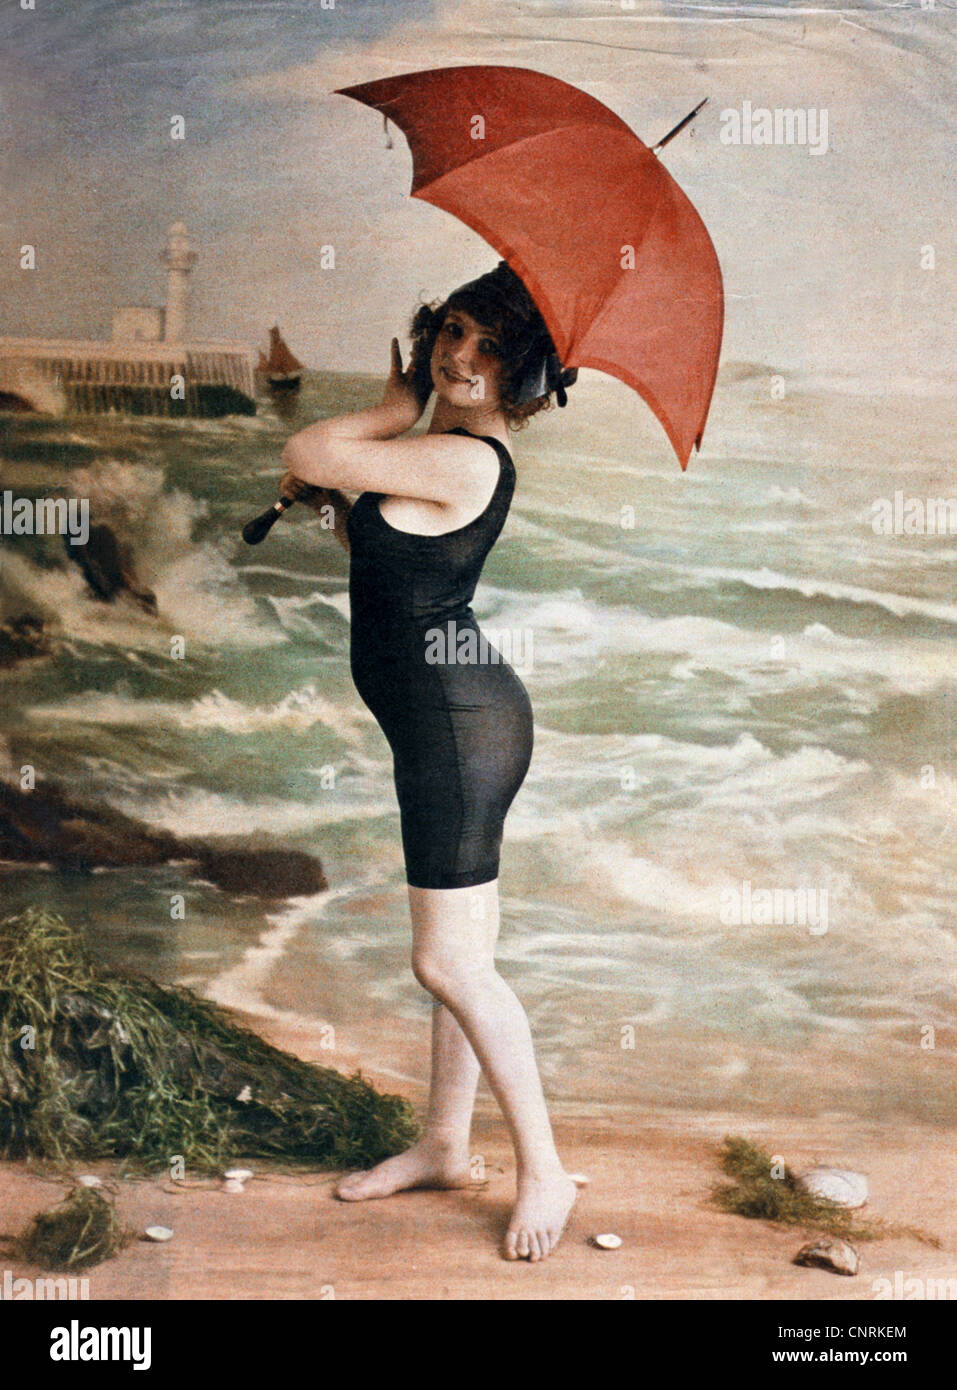 Bathing Beach Fashion Young Woman In Black Swimsuit With Red Stock